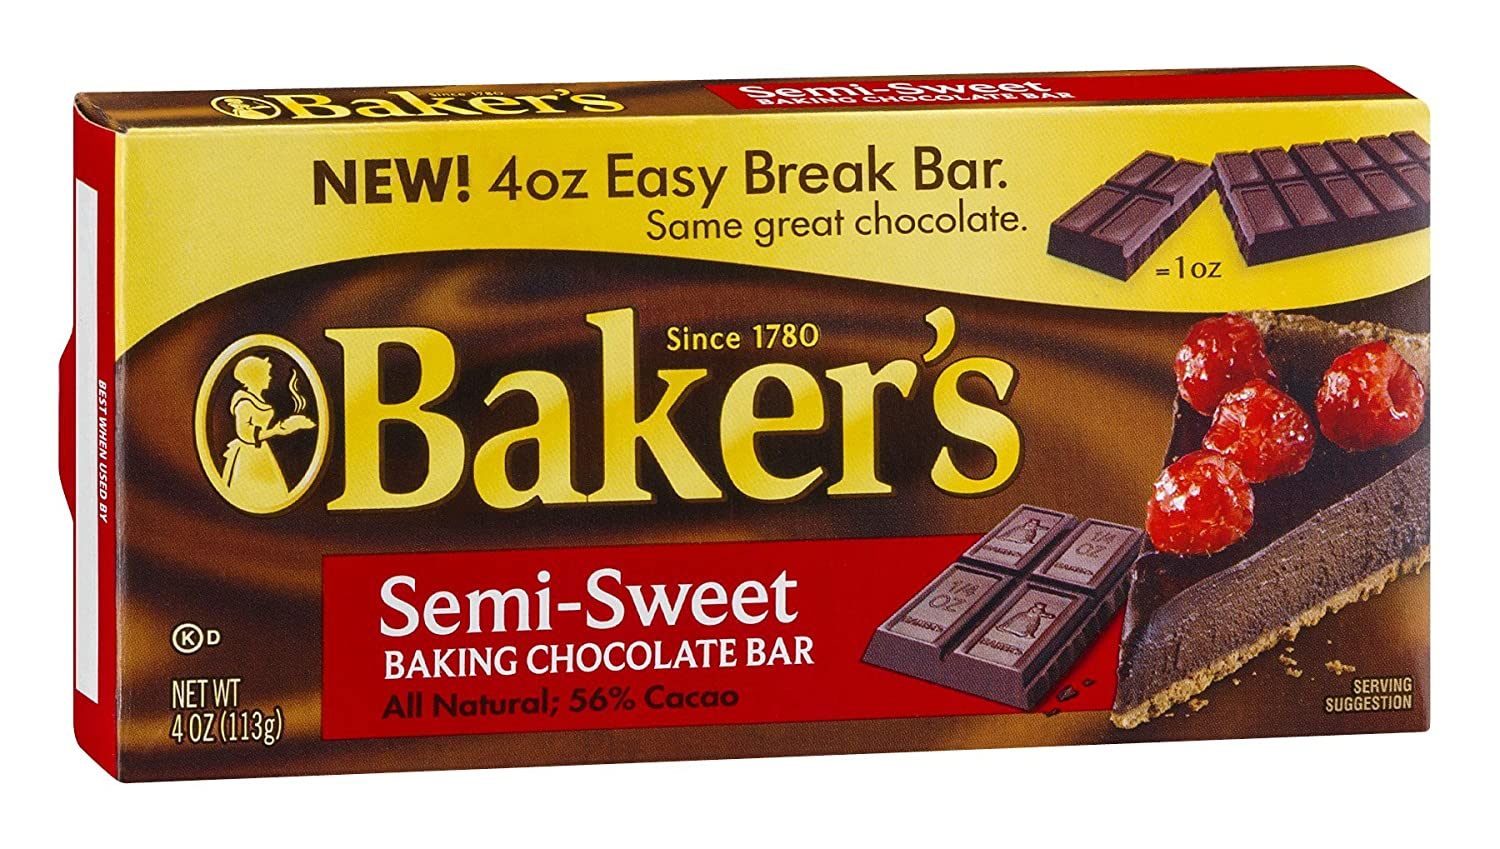 Baker's Semi-Sweet Chocolate Baking Popular product Bar of Max 63% OFF Pack 4 24 OZ